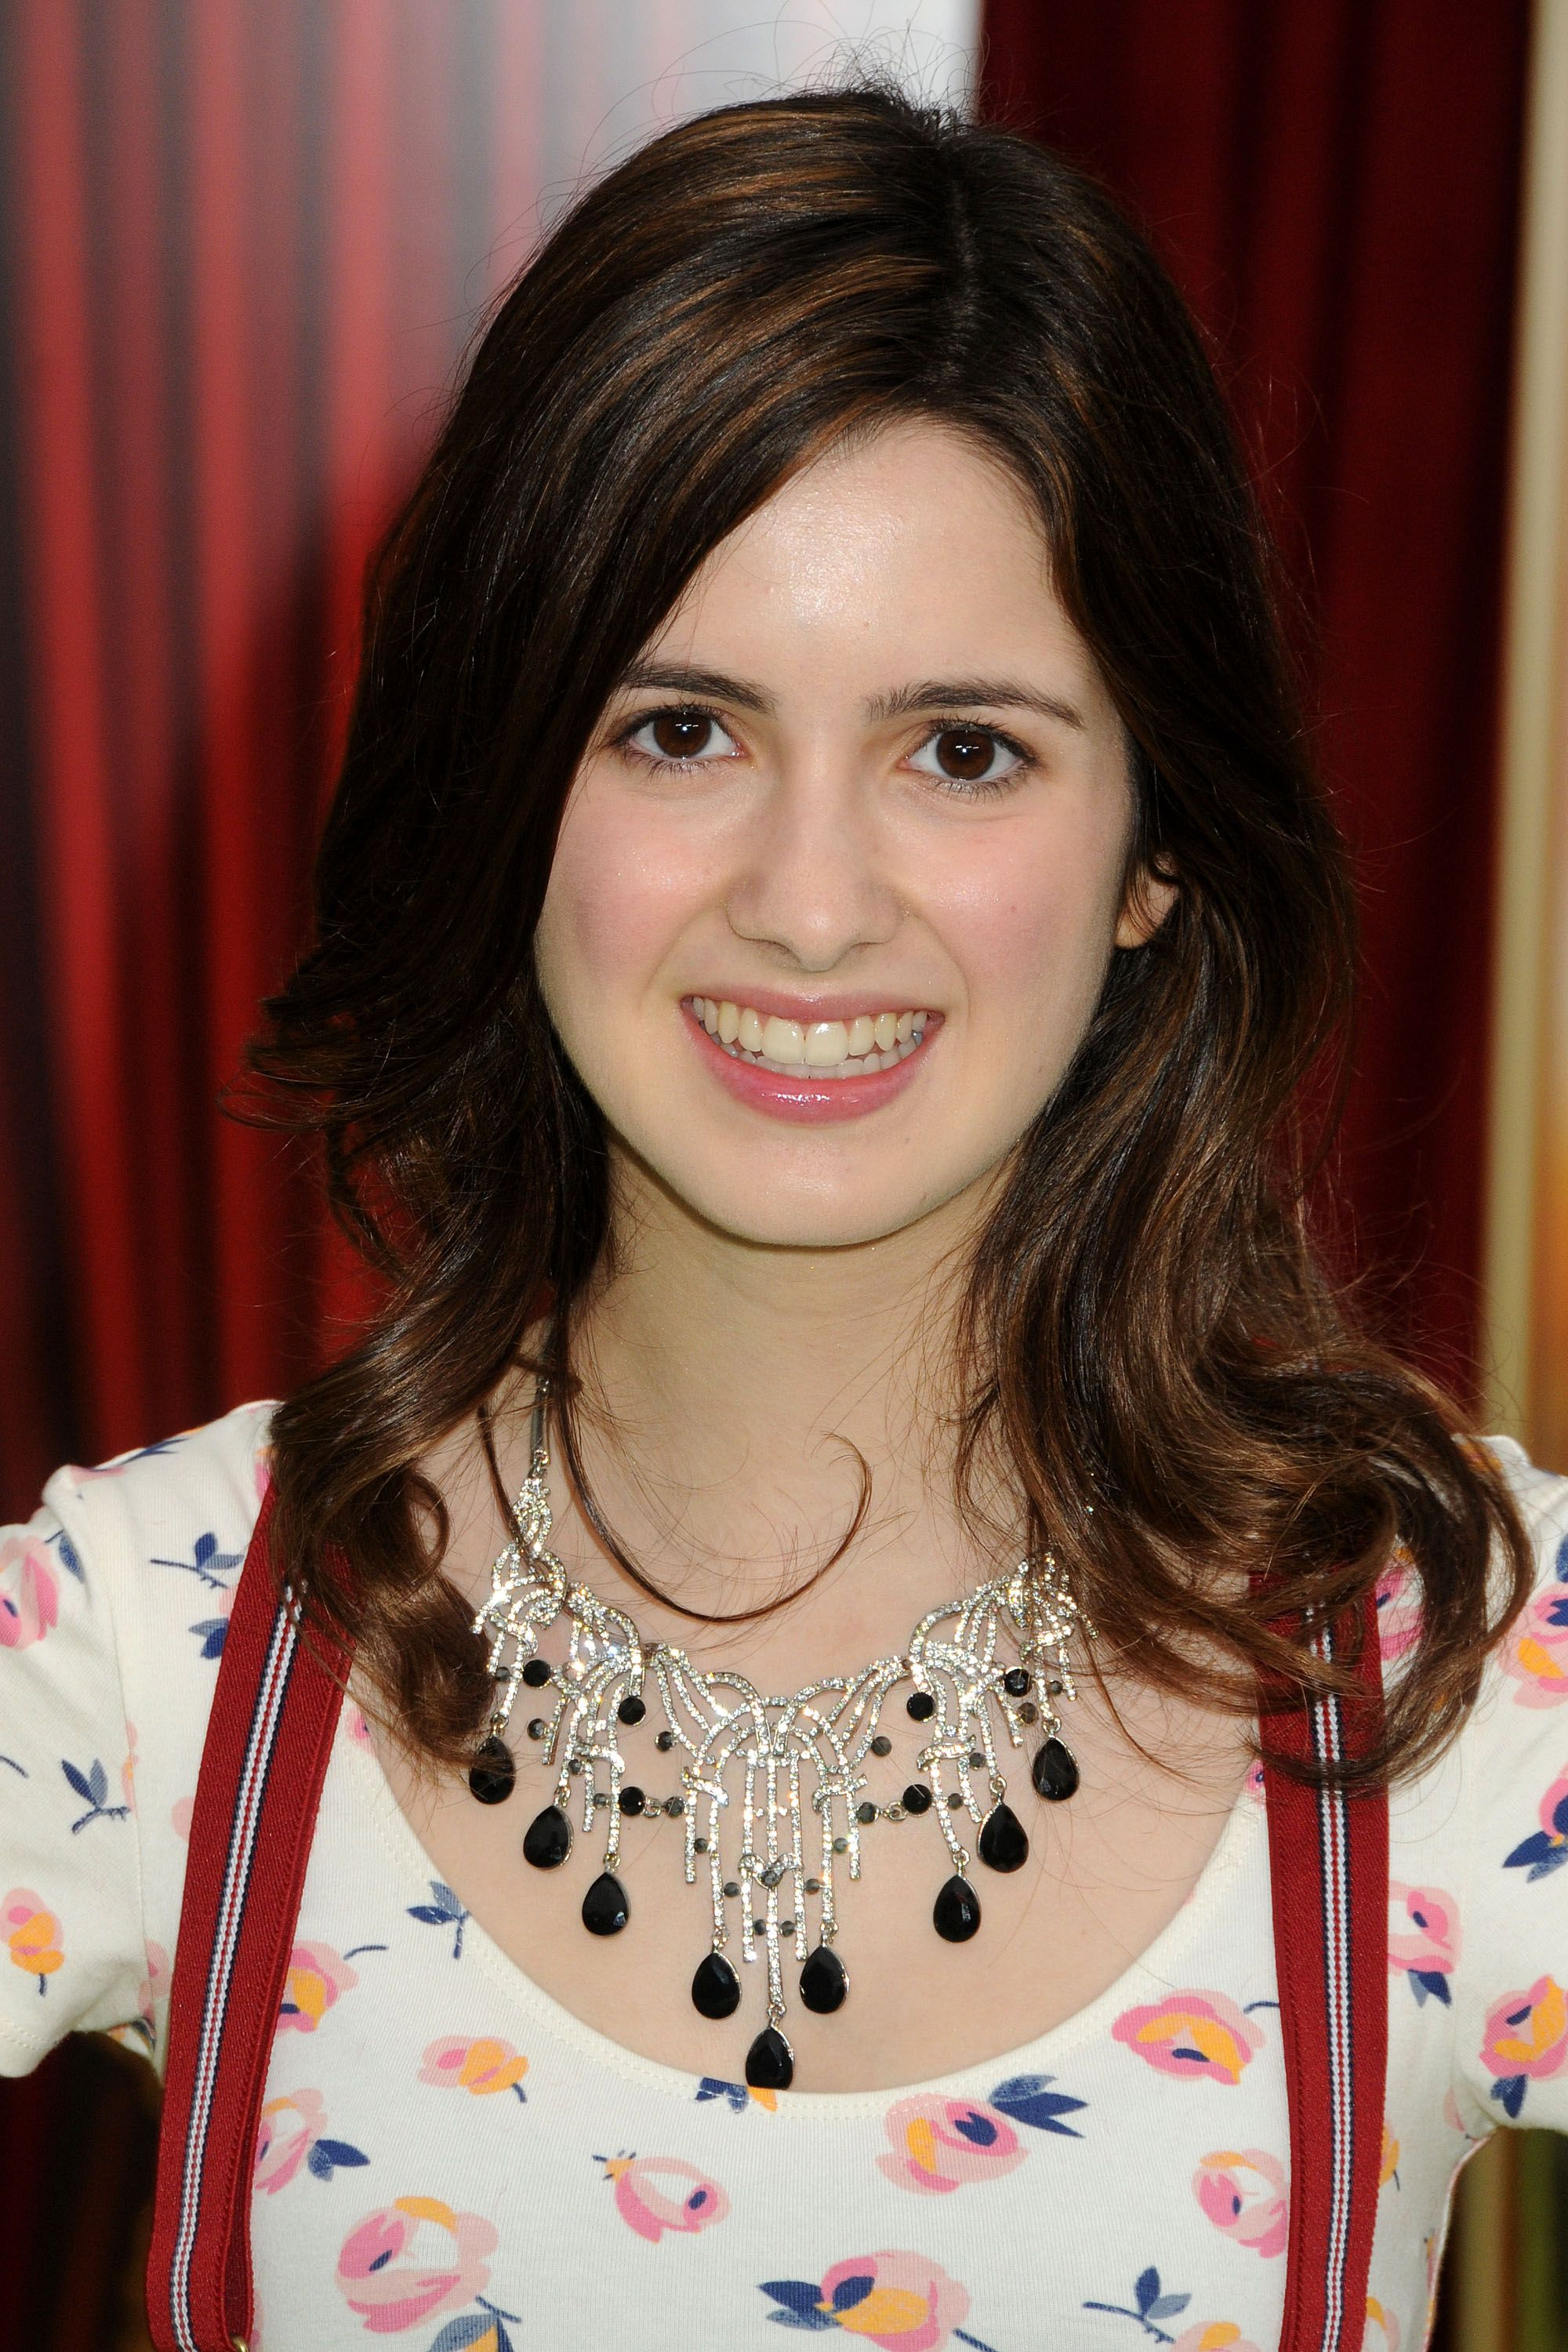 cameltoe laura marano 17 Best images about Laura on Pinterest   Ross lynch, Actresses and MTV